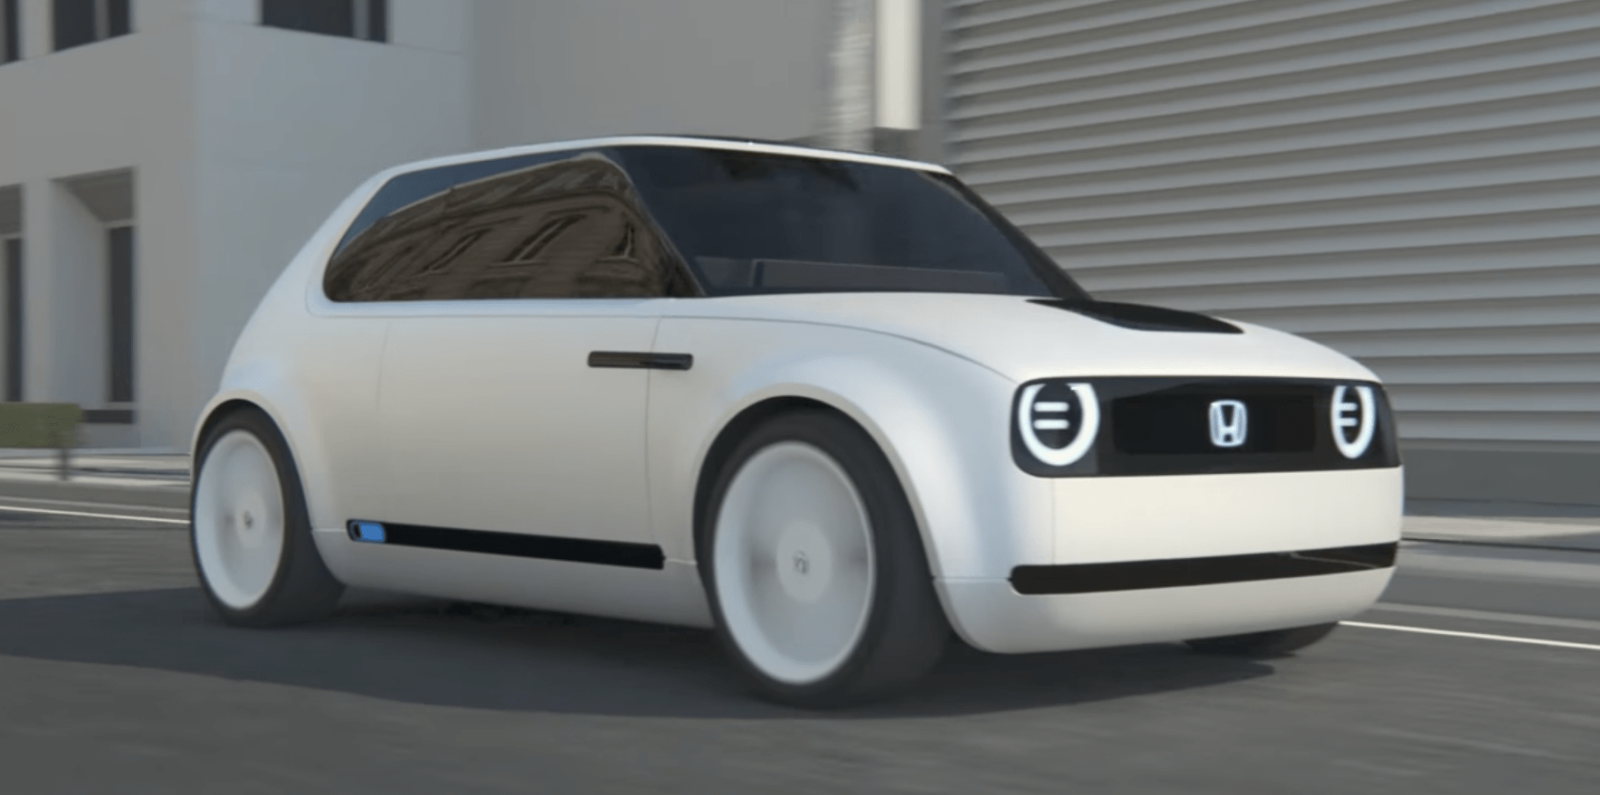 Honda Announces Total Electrification In Europe By 2025 But What Does It Mean Https T Co Vl1maijj1e Electric Car Concept New Model Car Honda Electric Car